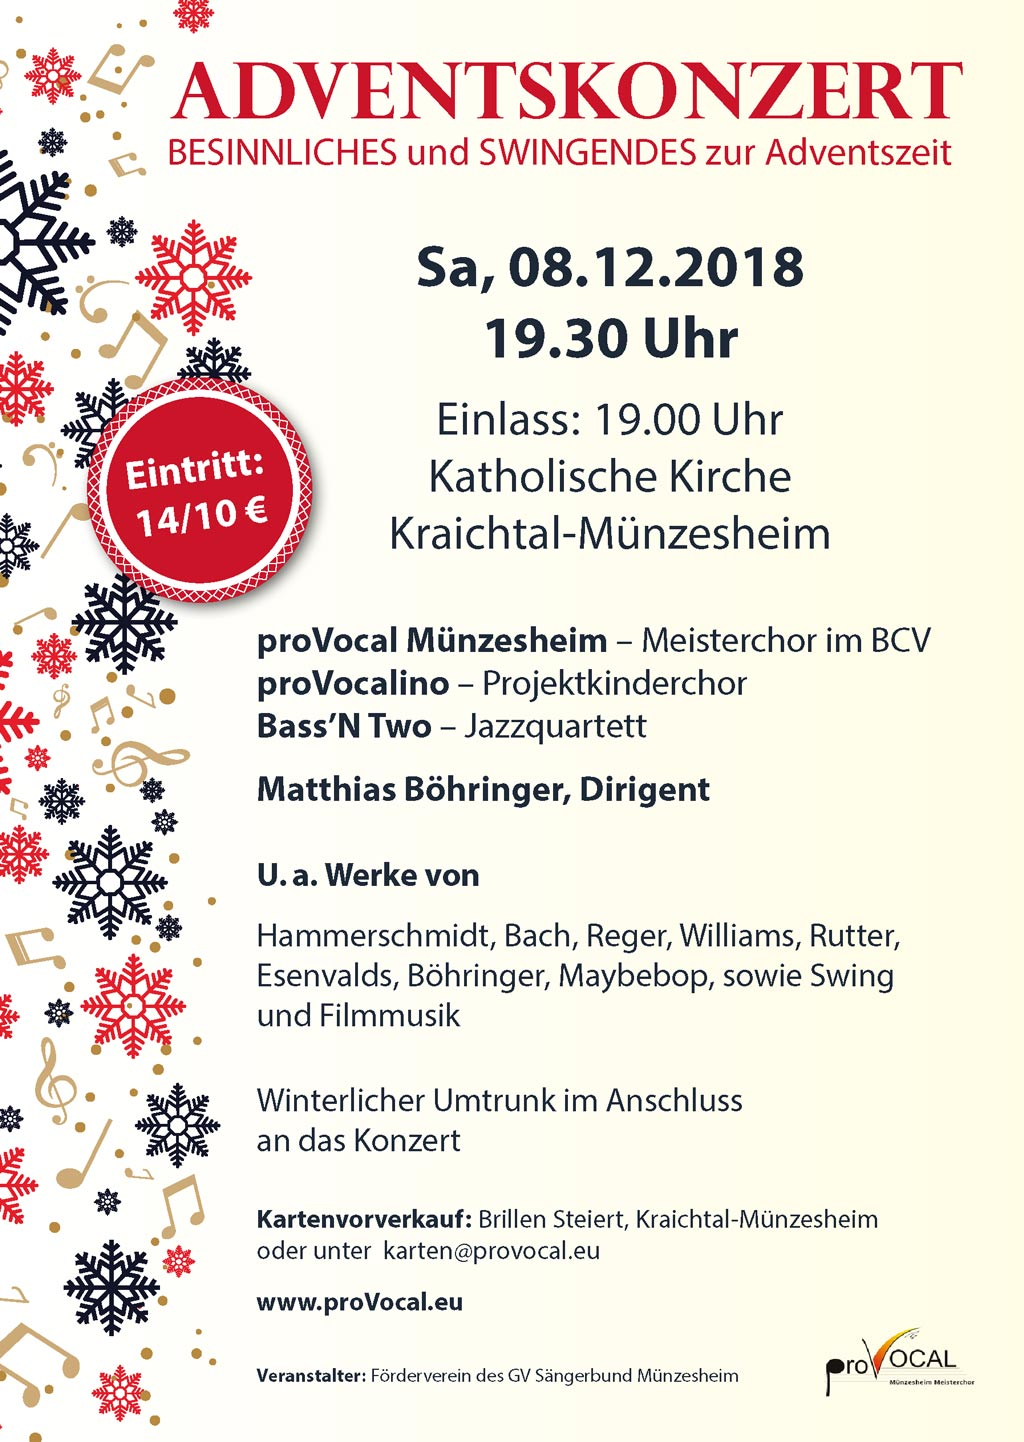 provocal_adventskonzert2018_web